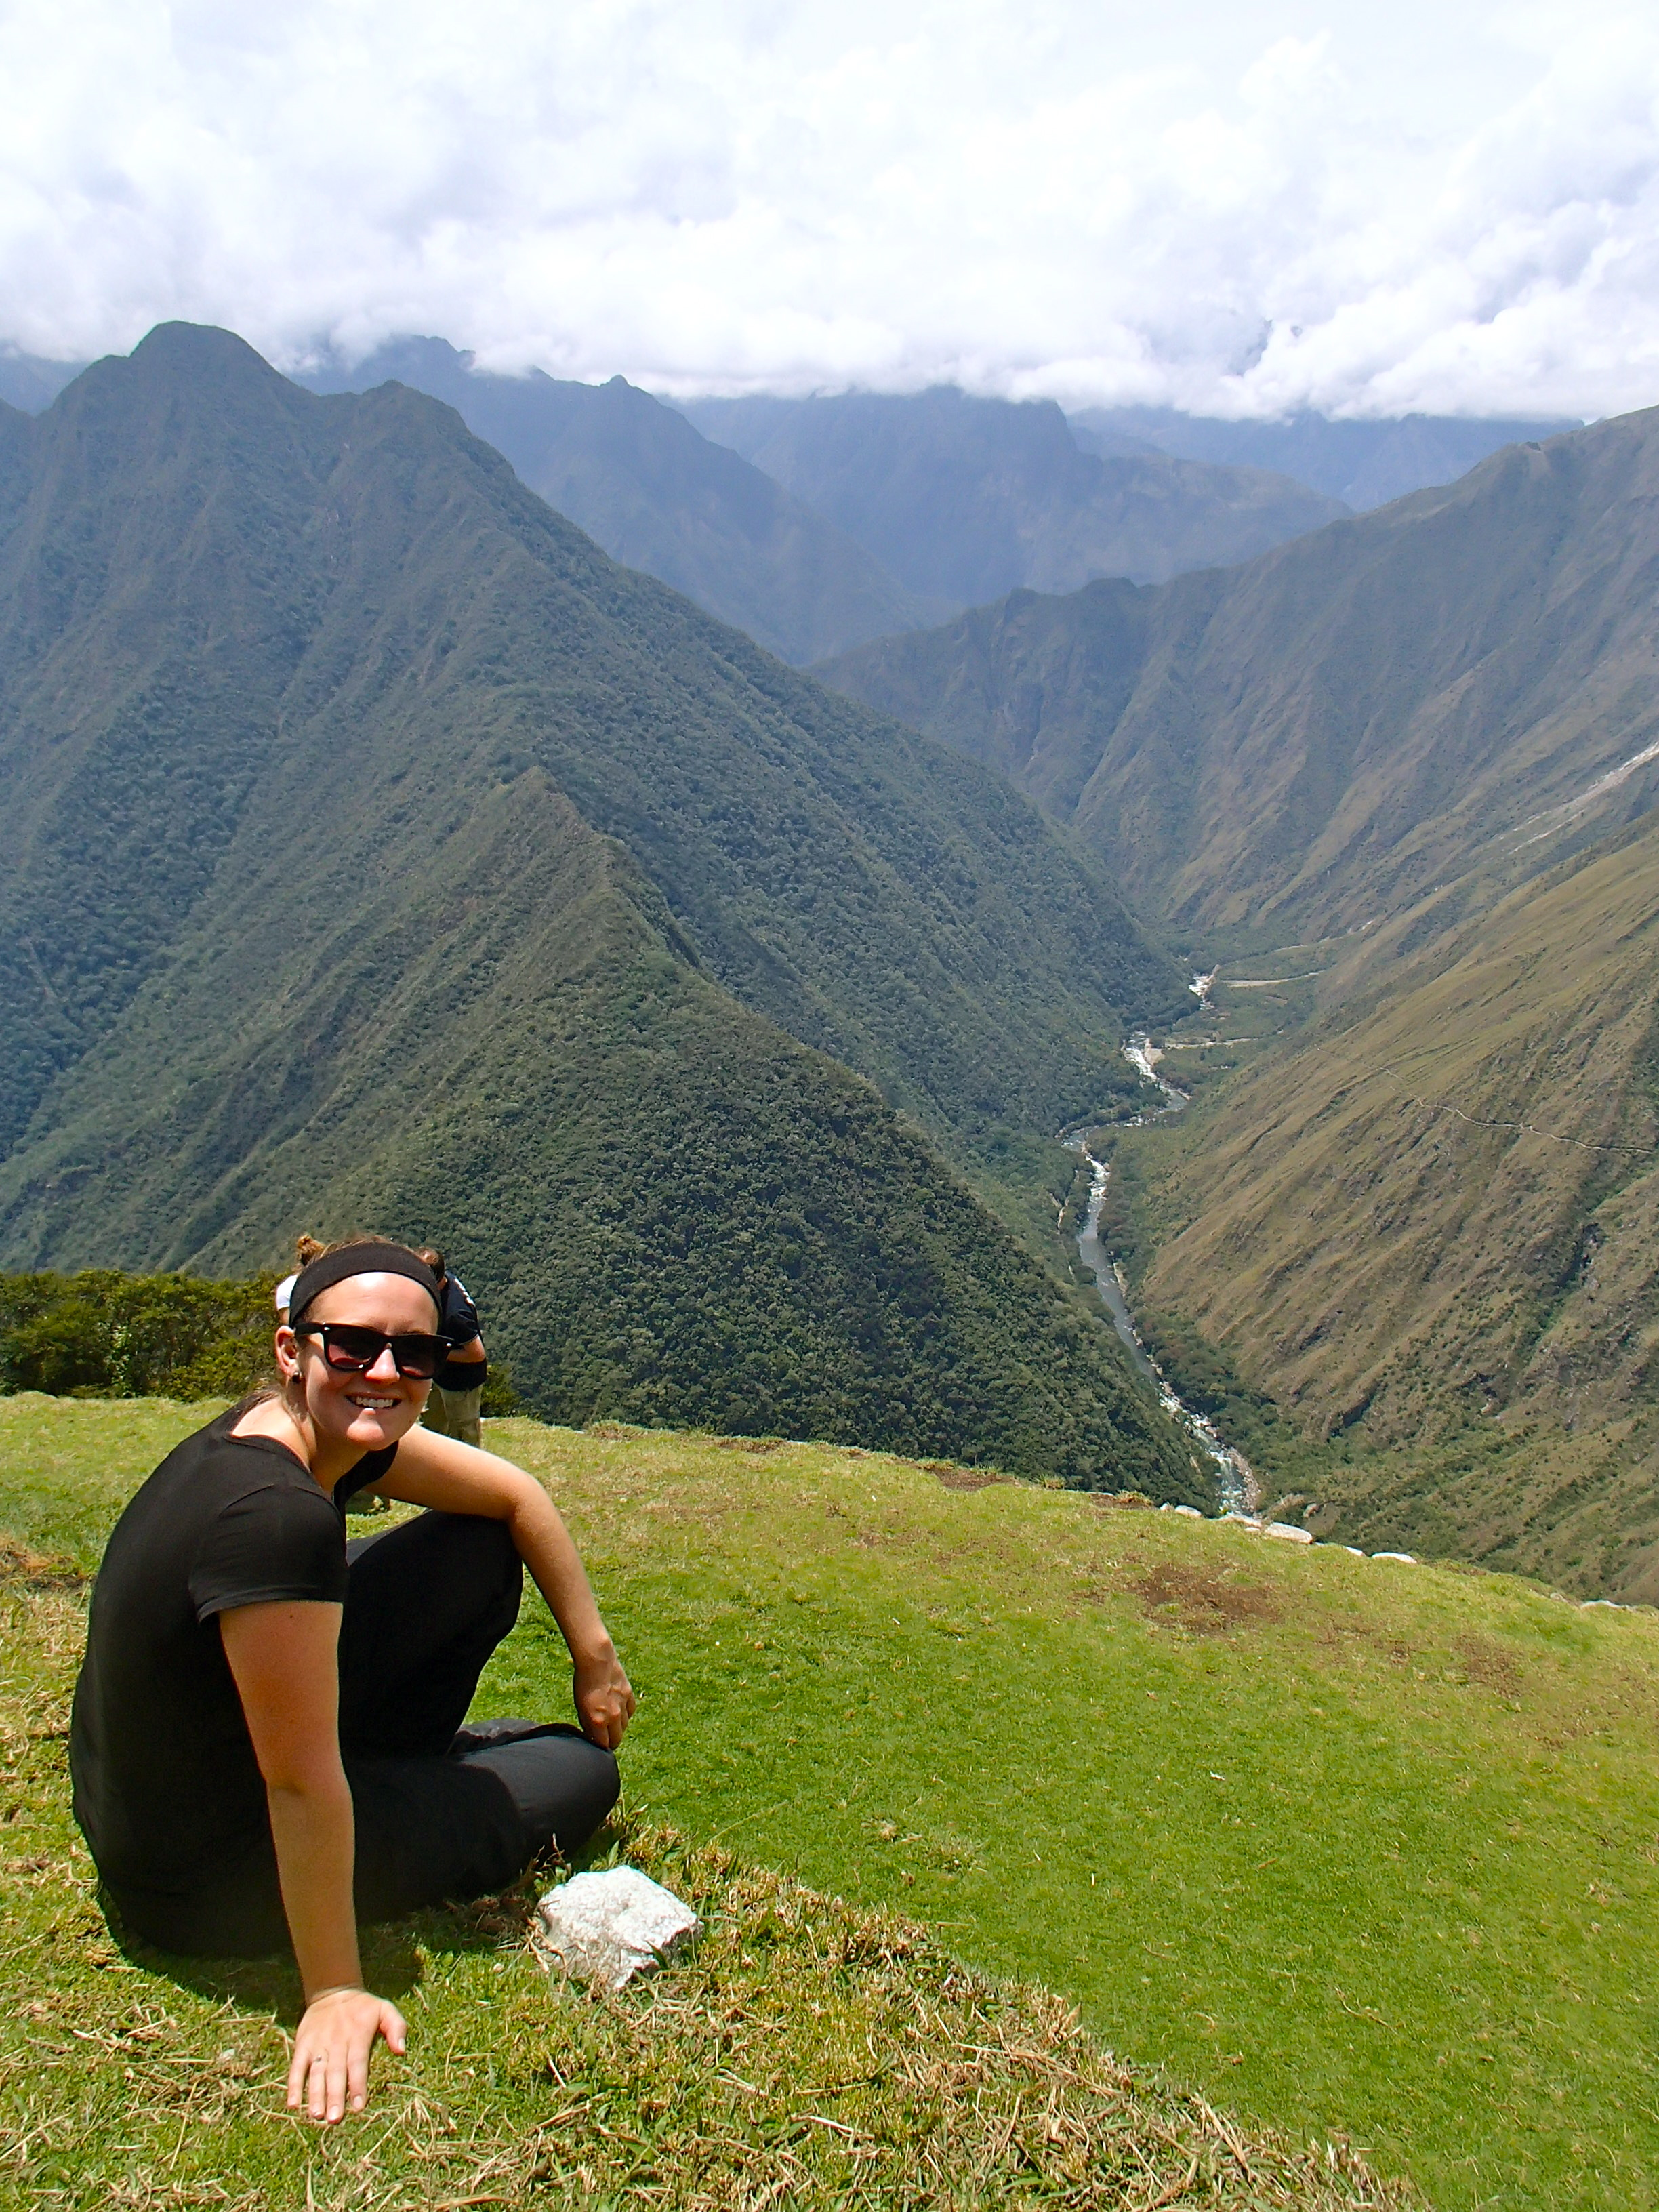 what to take on the inca trail?